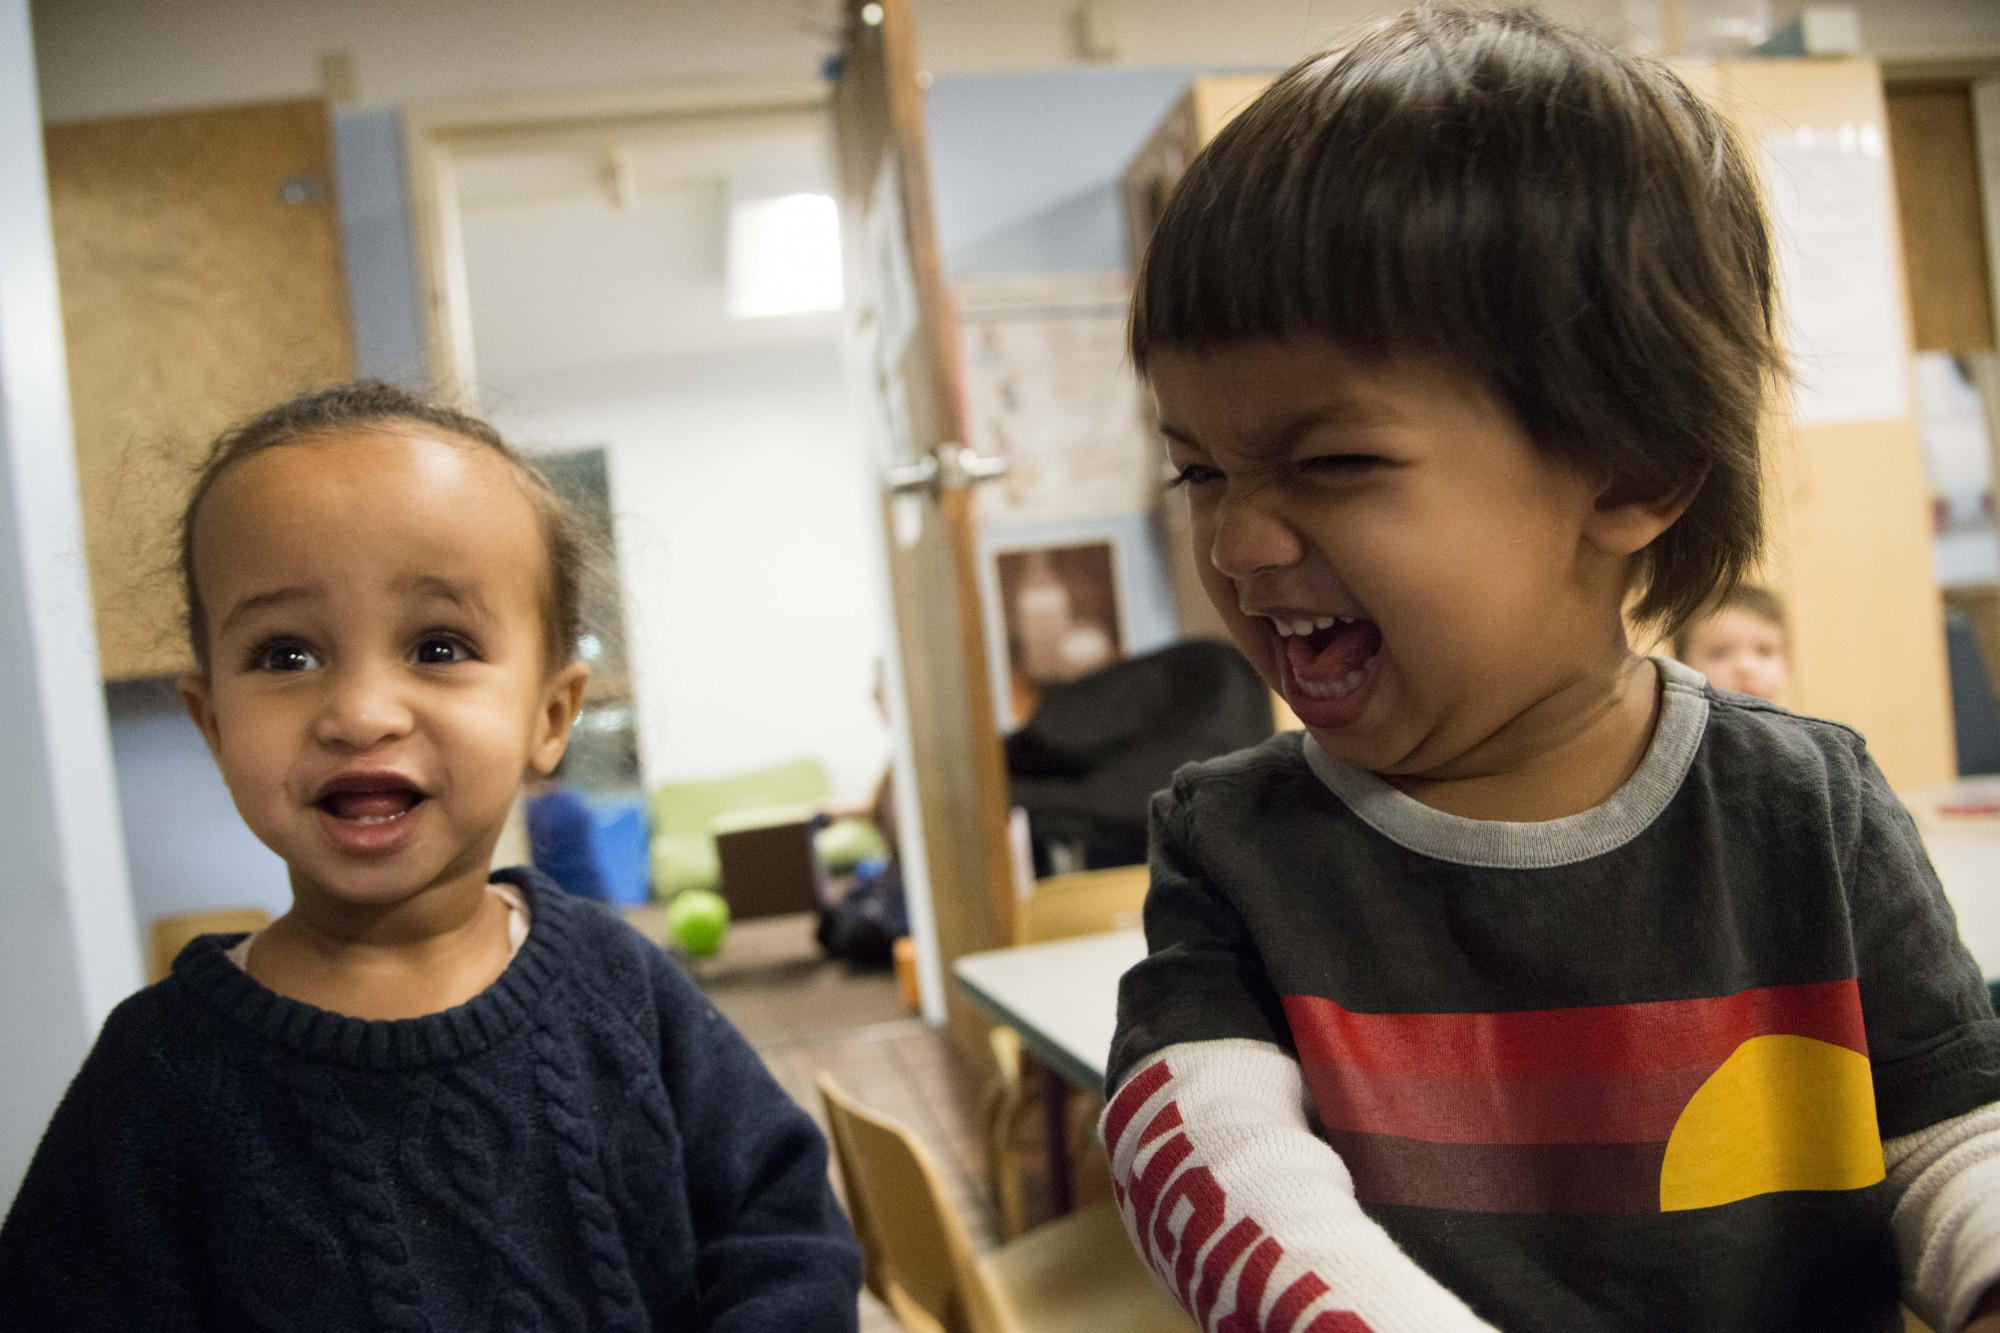 Taymia, 2, left, and Rishi, 2, right, laugh after looking at their photos at the Como Early Learning Center on Tuesday, Nov. 19.